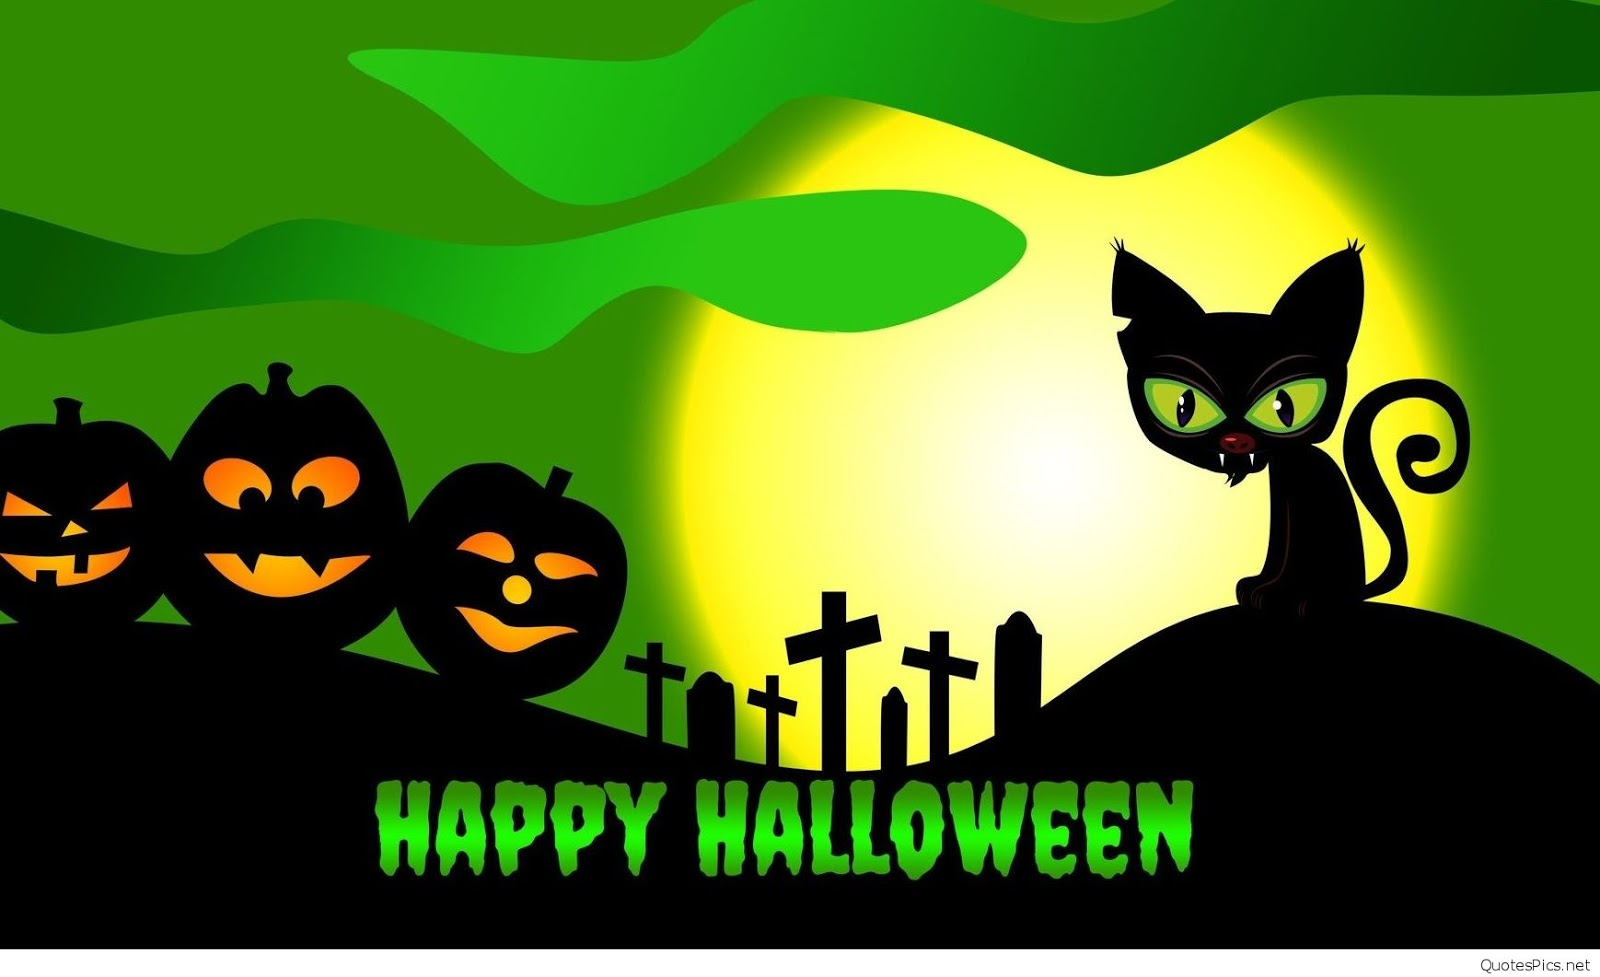 Happy Halloween 2017 images background wallpaper posters ...